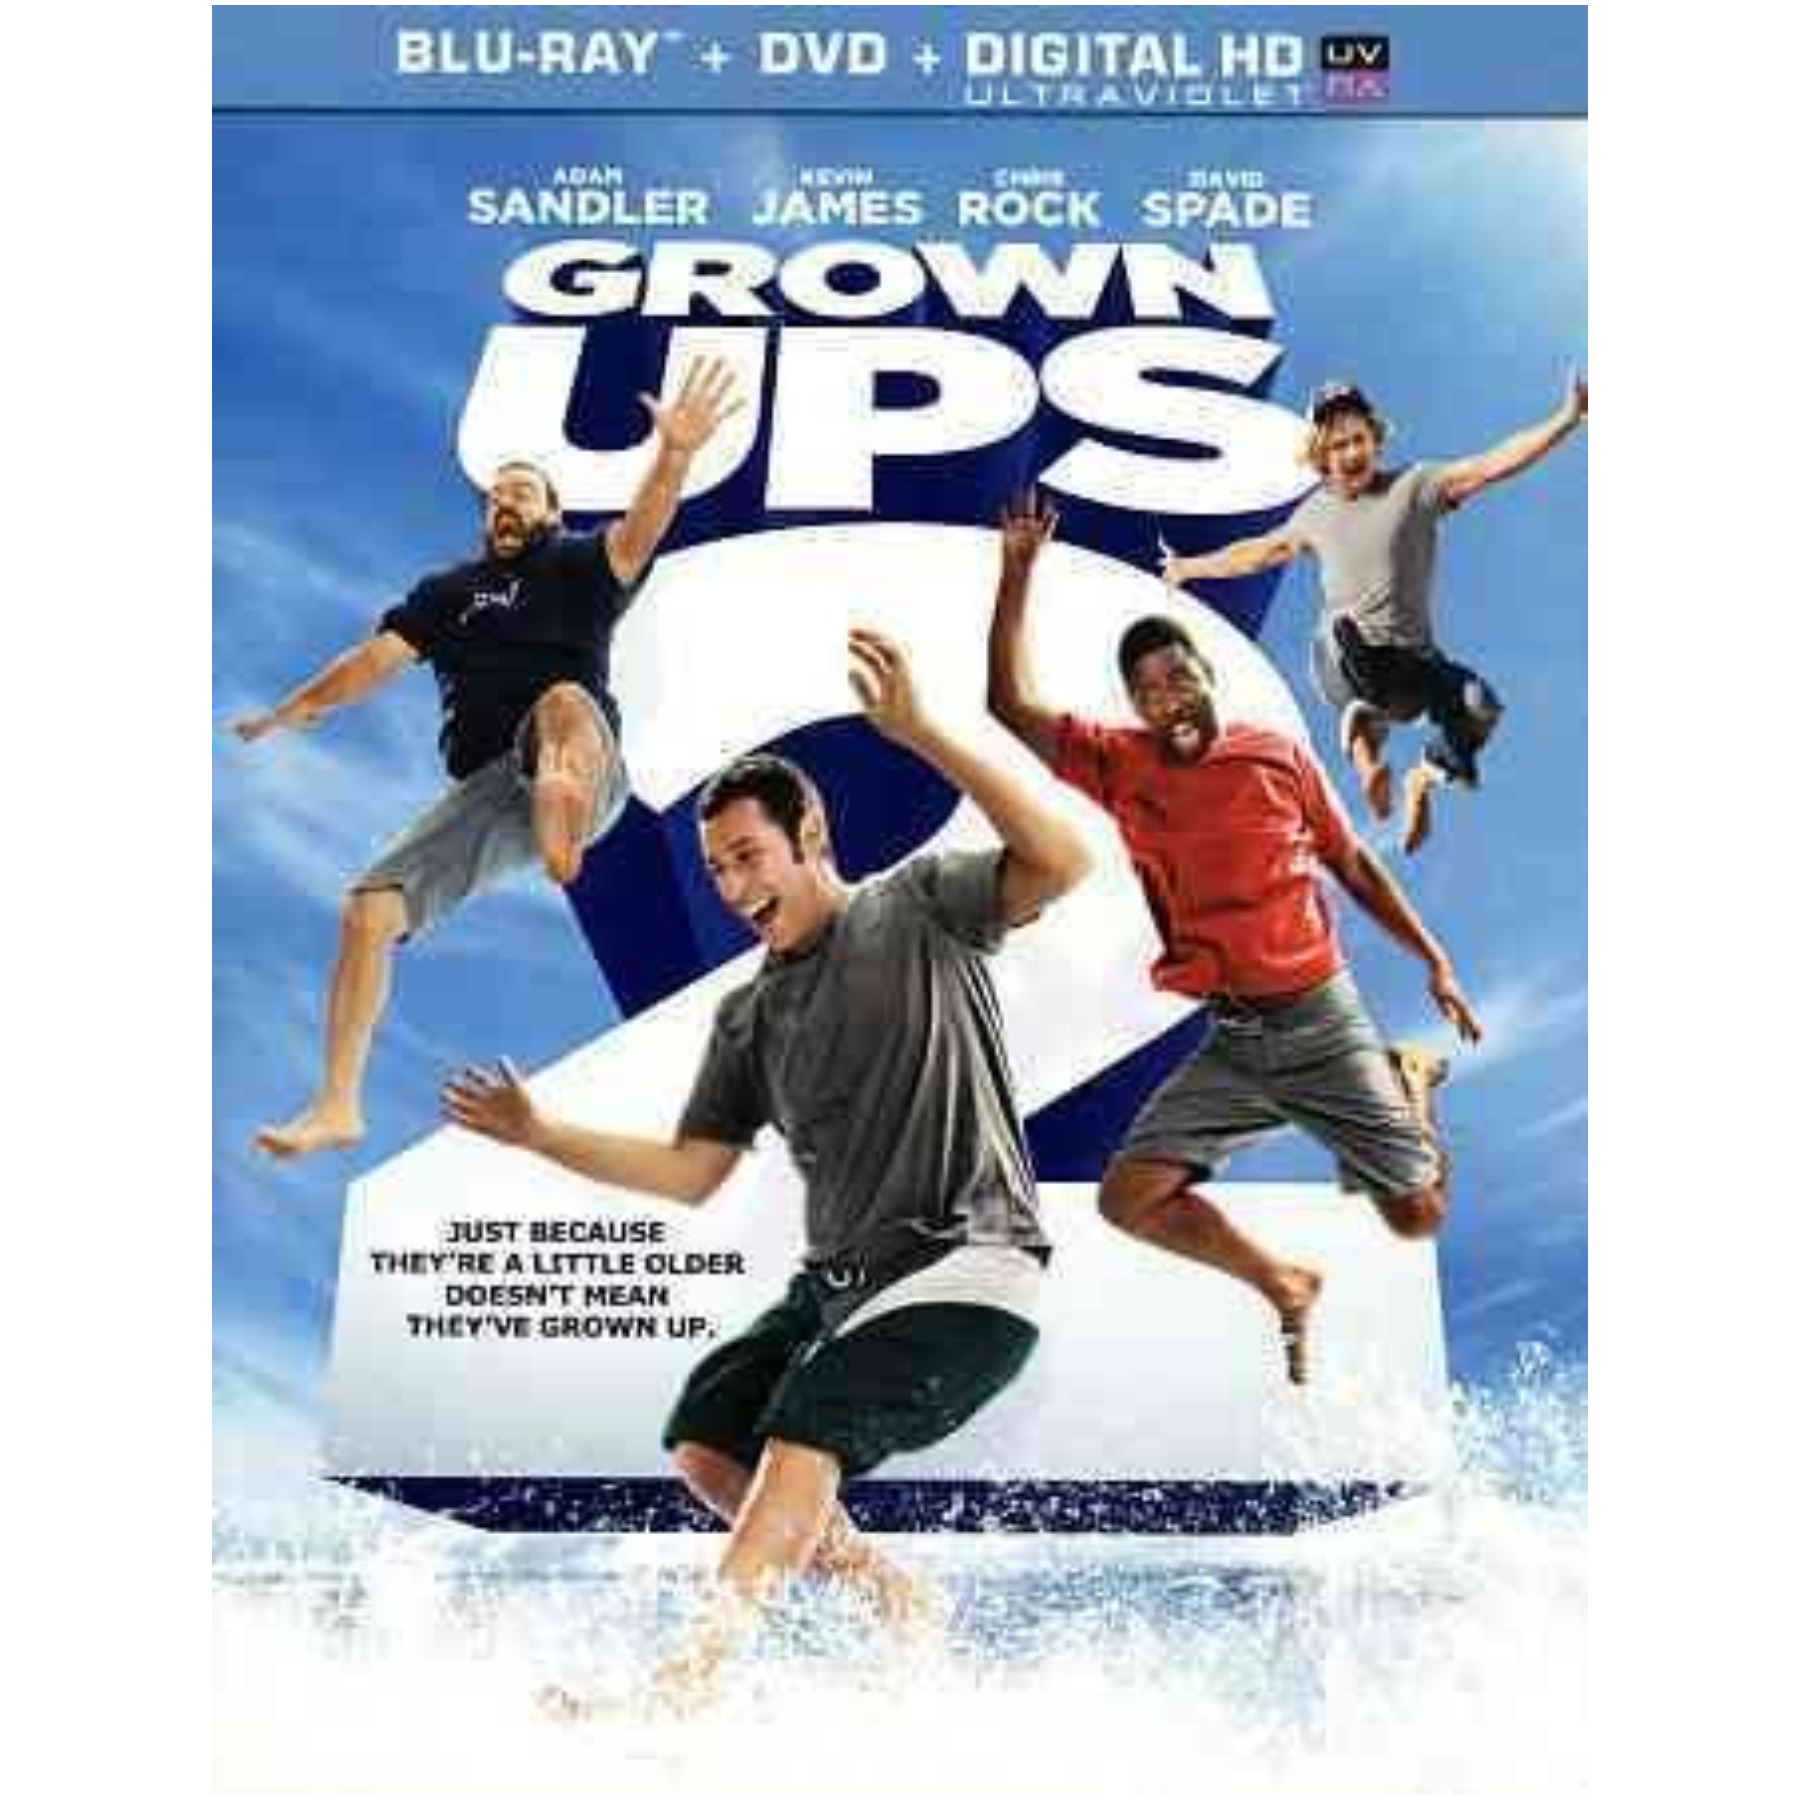 Grown Ups 2 Blu-Ray/DVD Combo/Ultra Violet/Dol Dig 5.1/Eng/Fren-Paris 043396417489